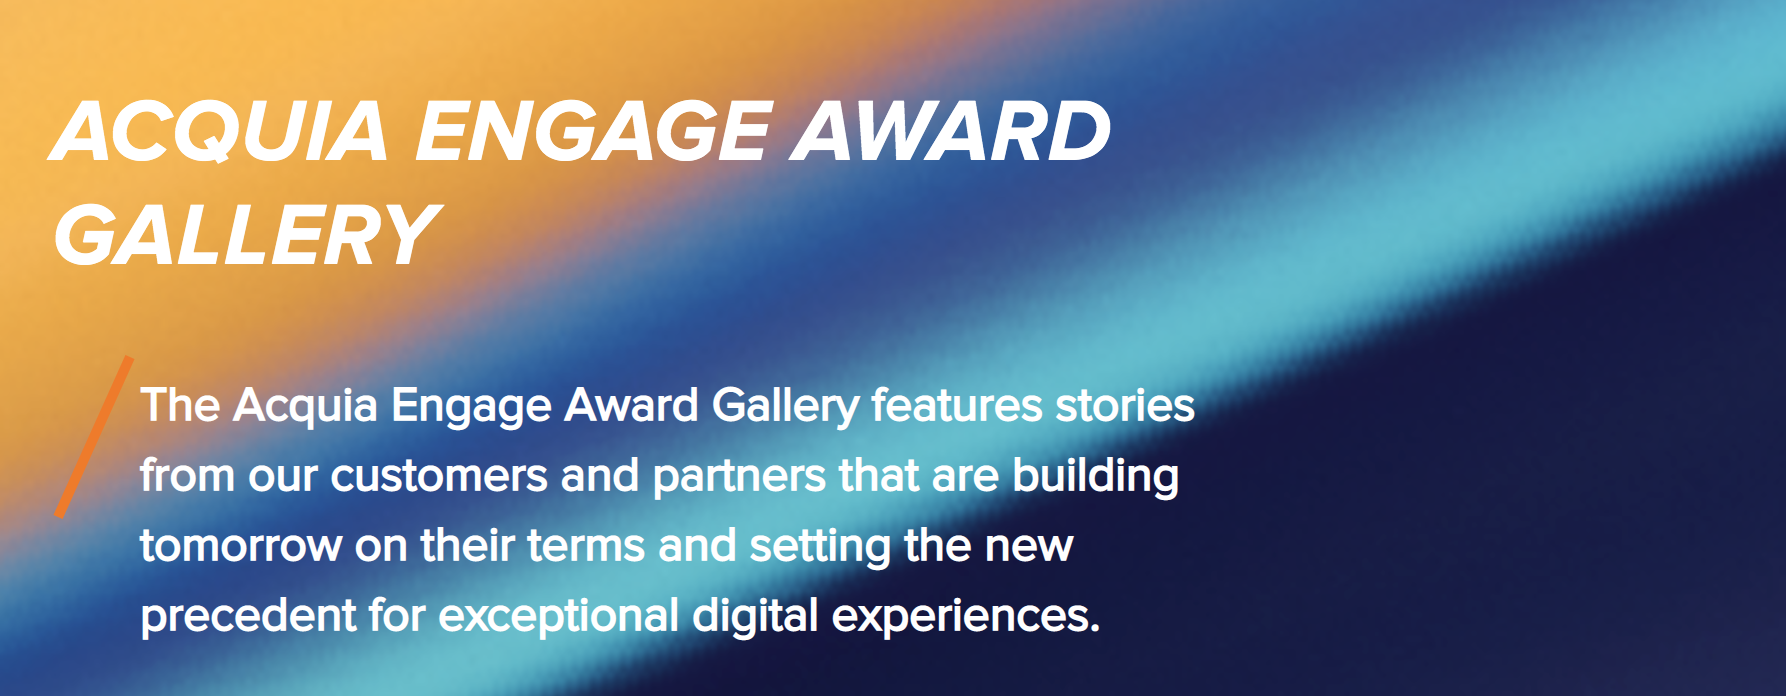 Acquia Engage Award Gallery